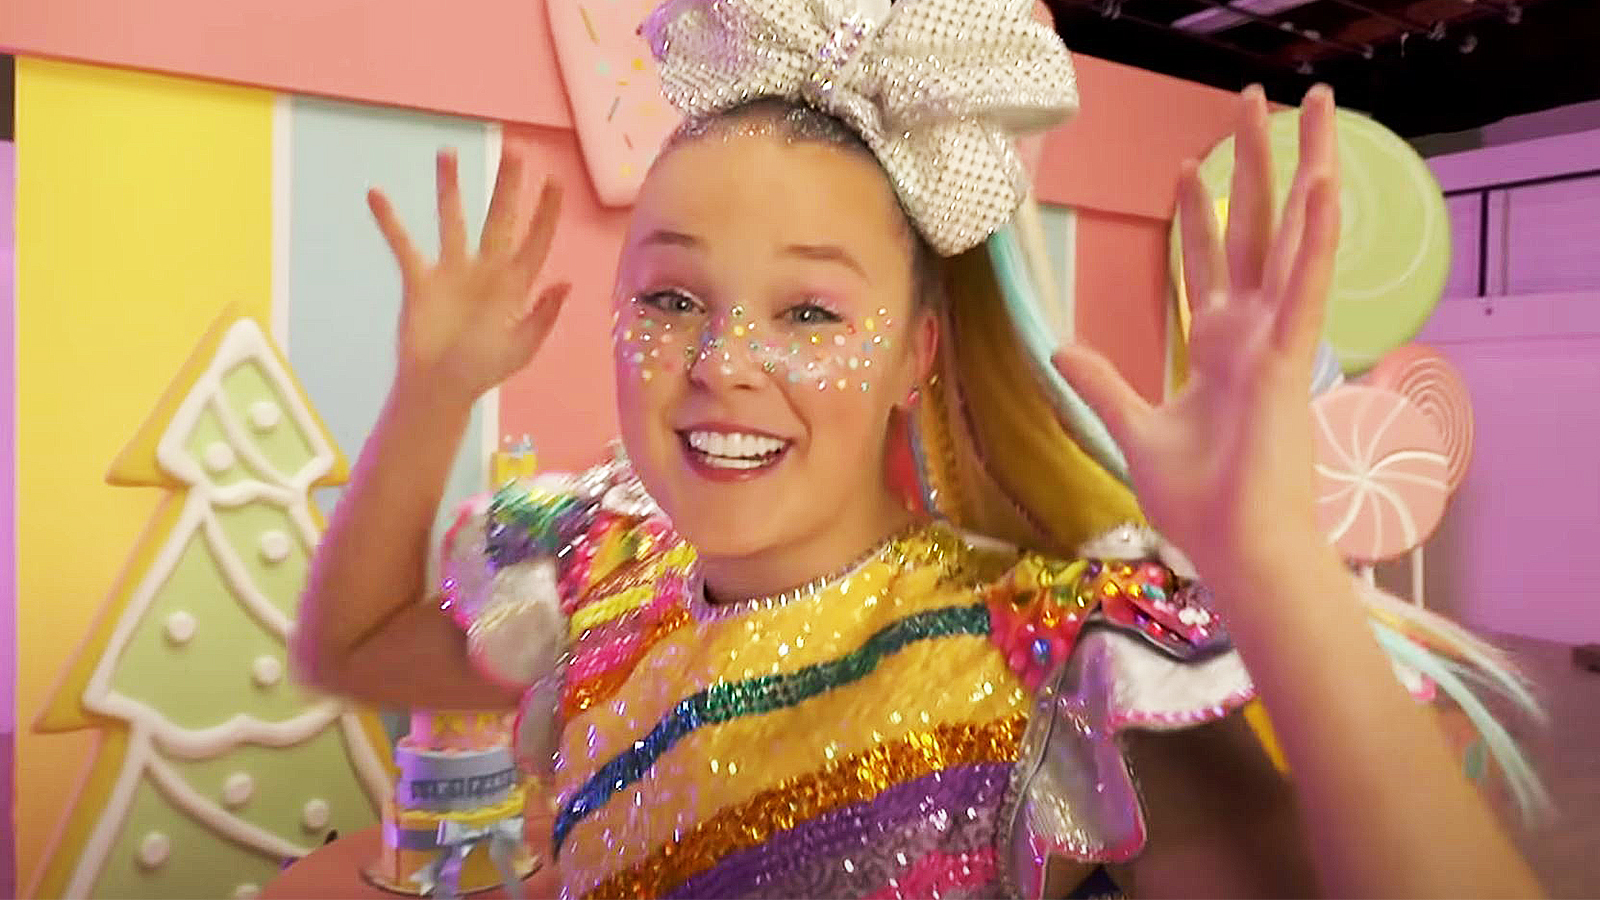 JoJo Siwa releases first pictures with new girlfriend